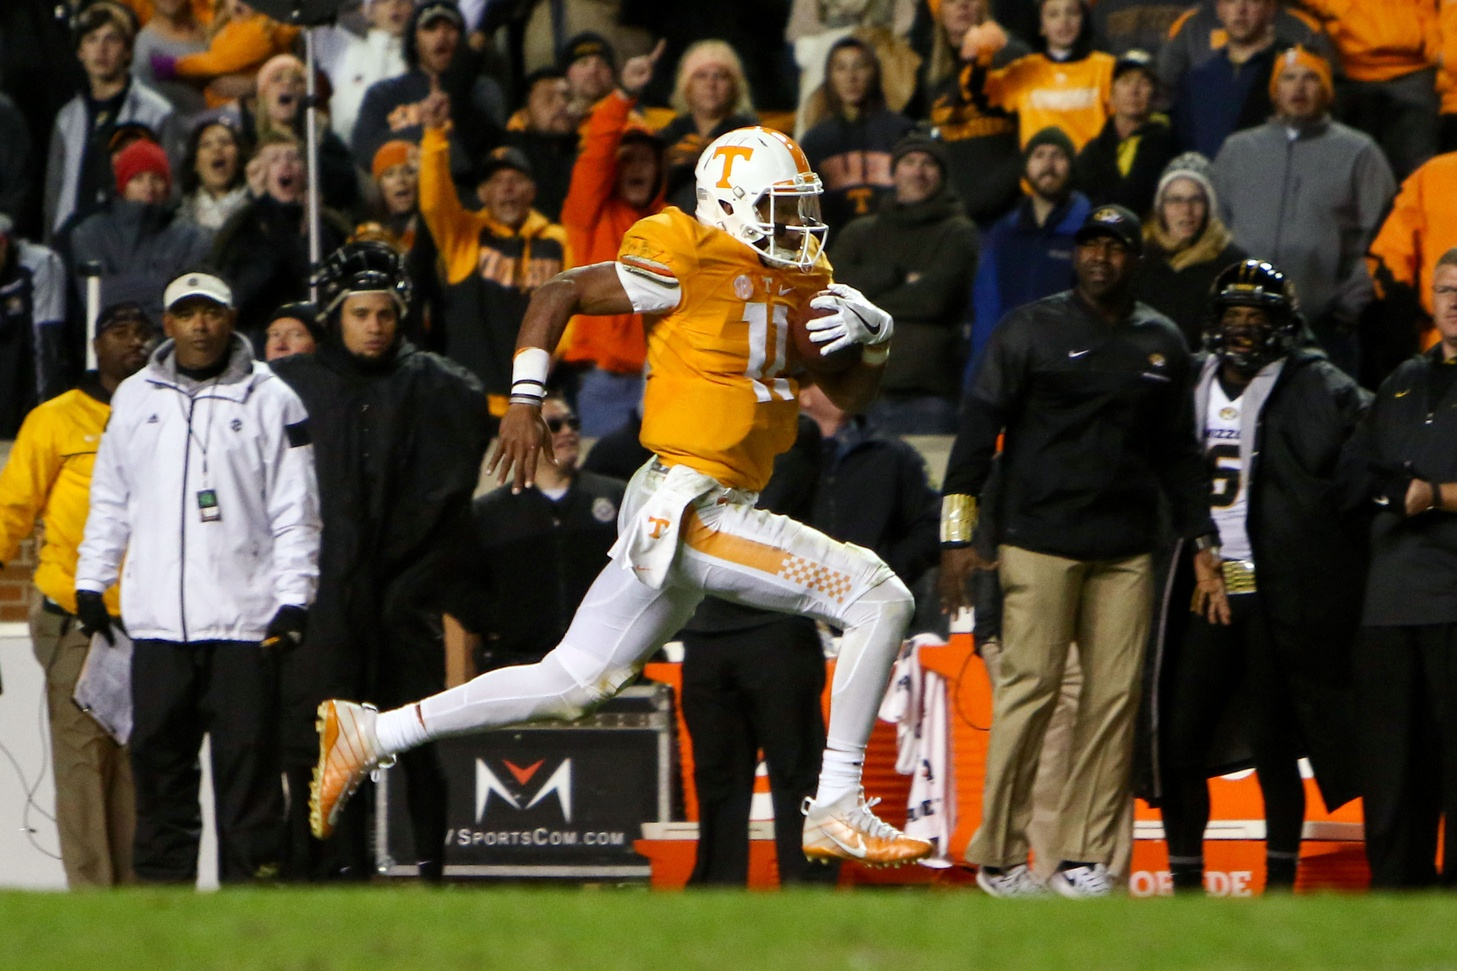 Nov 19, 2016; Knoxville, TN, USA; Tennessee Volunteers quarterback Joshua Dobbs (11) runs for a touchdown against the Missouri Tigers during the second half at Neyland Stadium. Tennessee won 63 to 37. Mandatory Credit: Randy Sartin-USA TODAY Sports